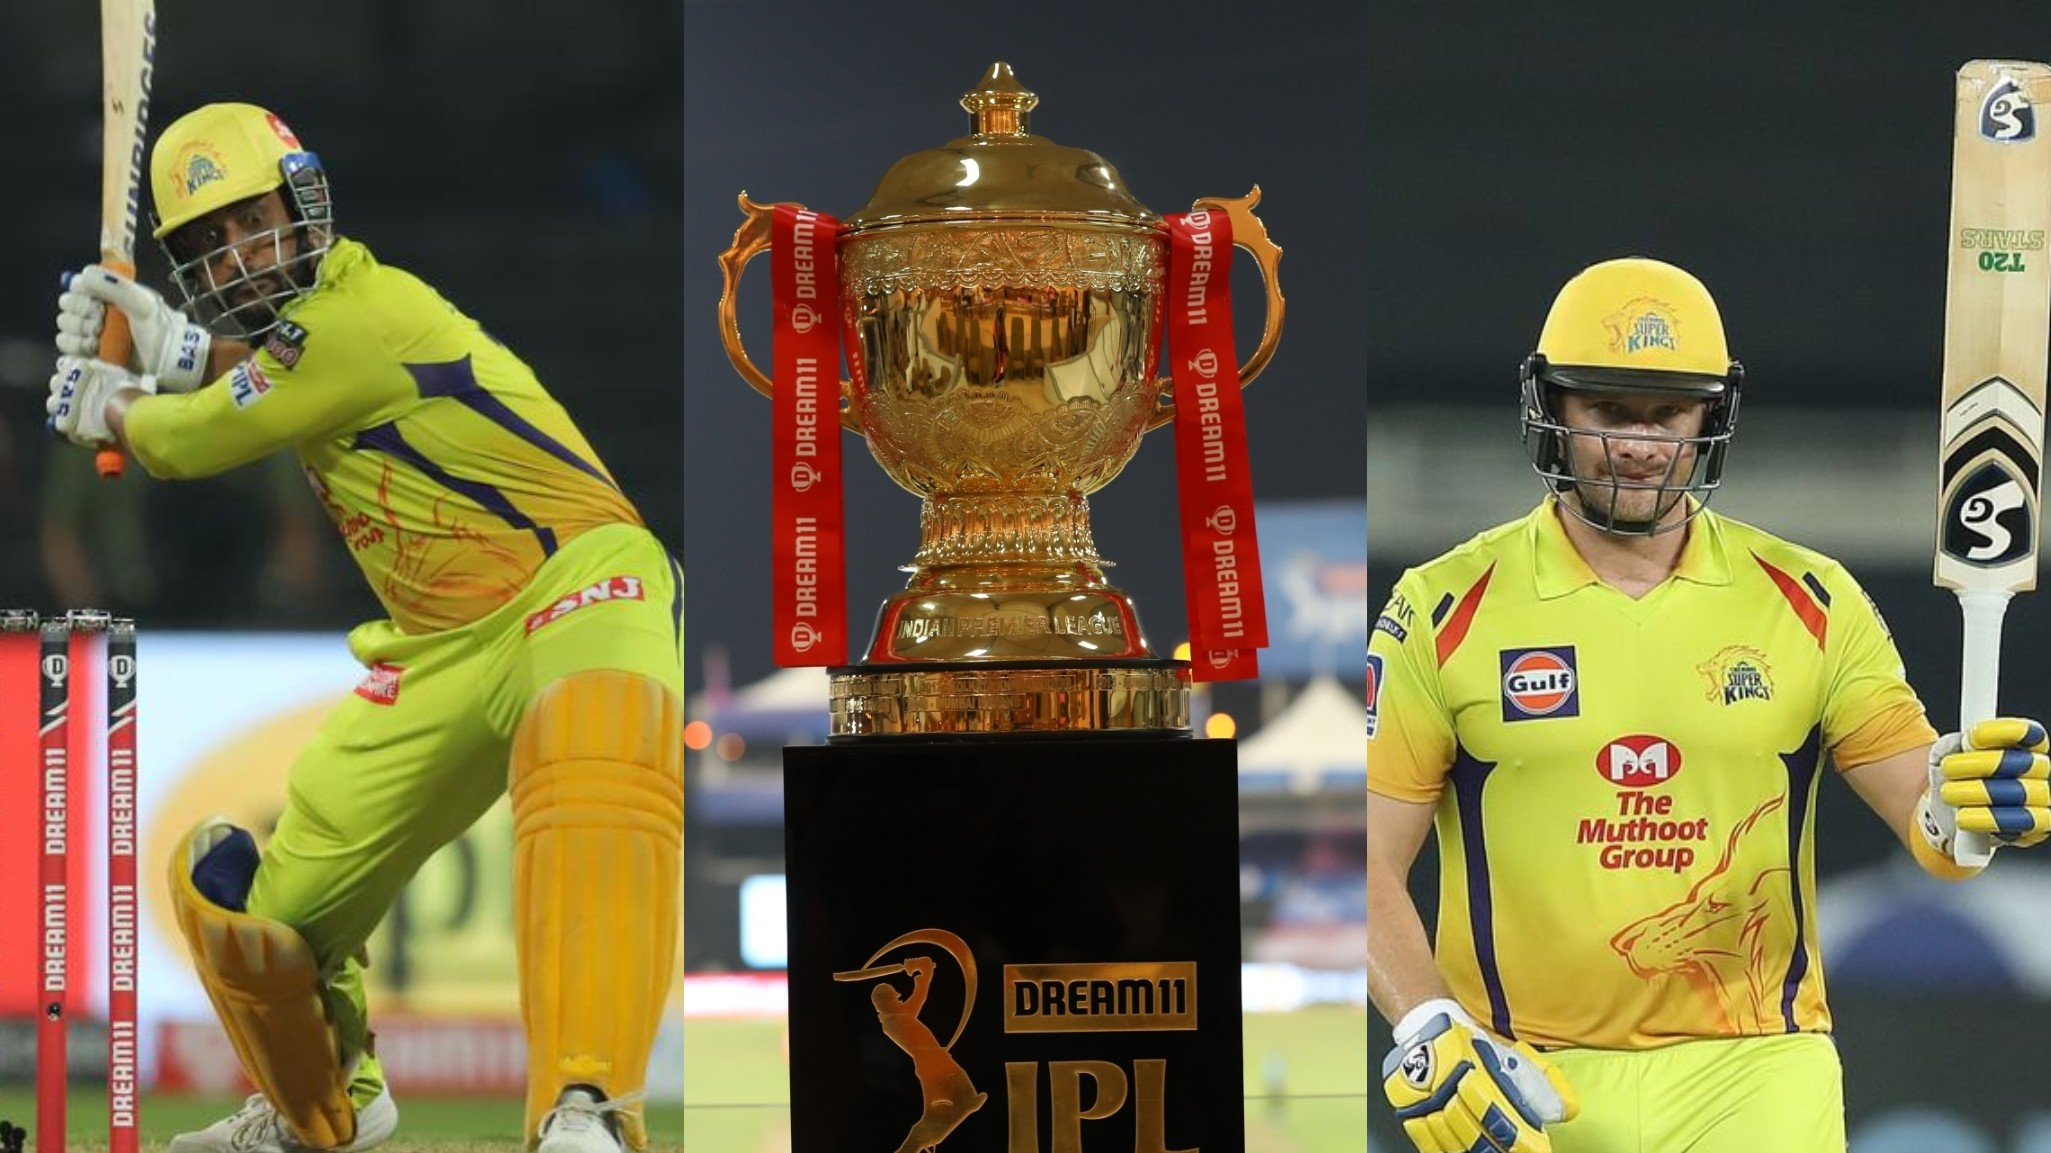 IPL 2020: 5 biggest disappointments for CSK in IPL 13